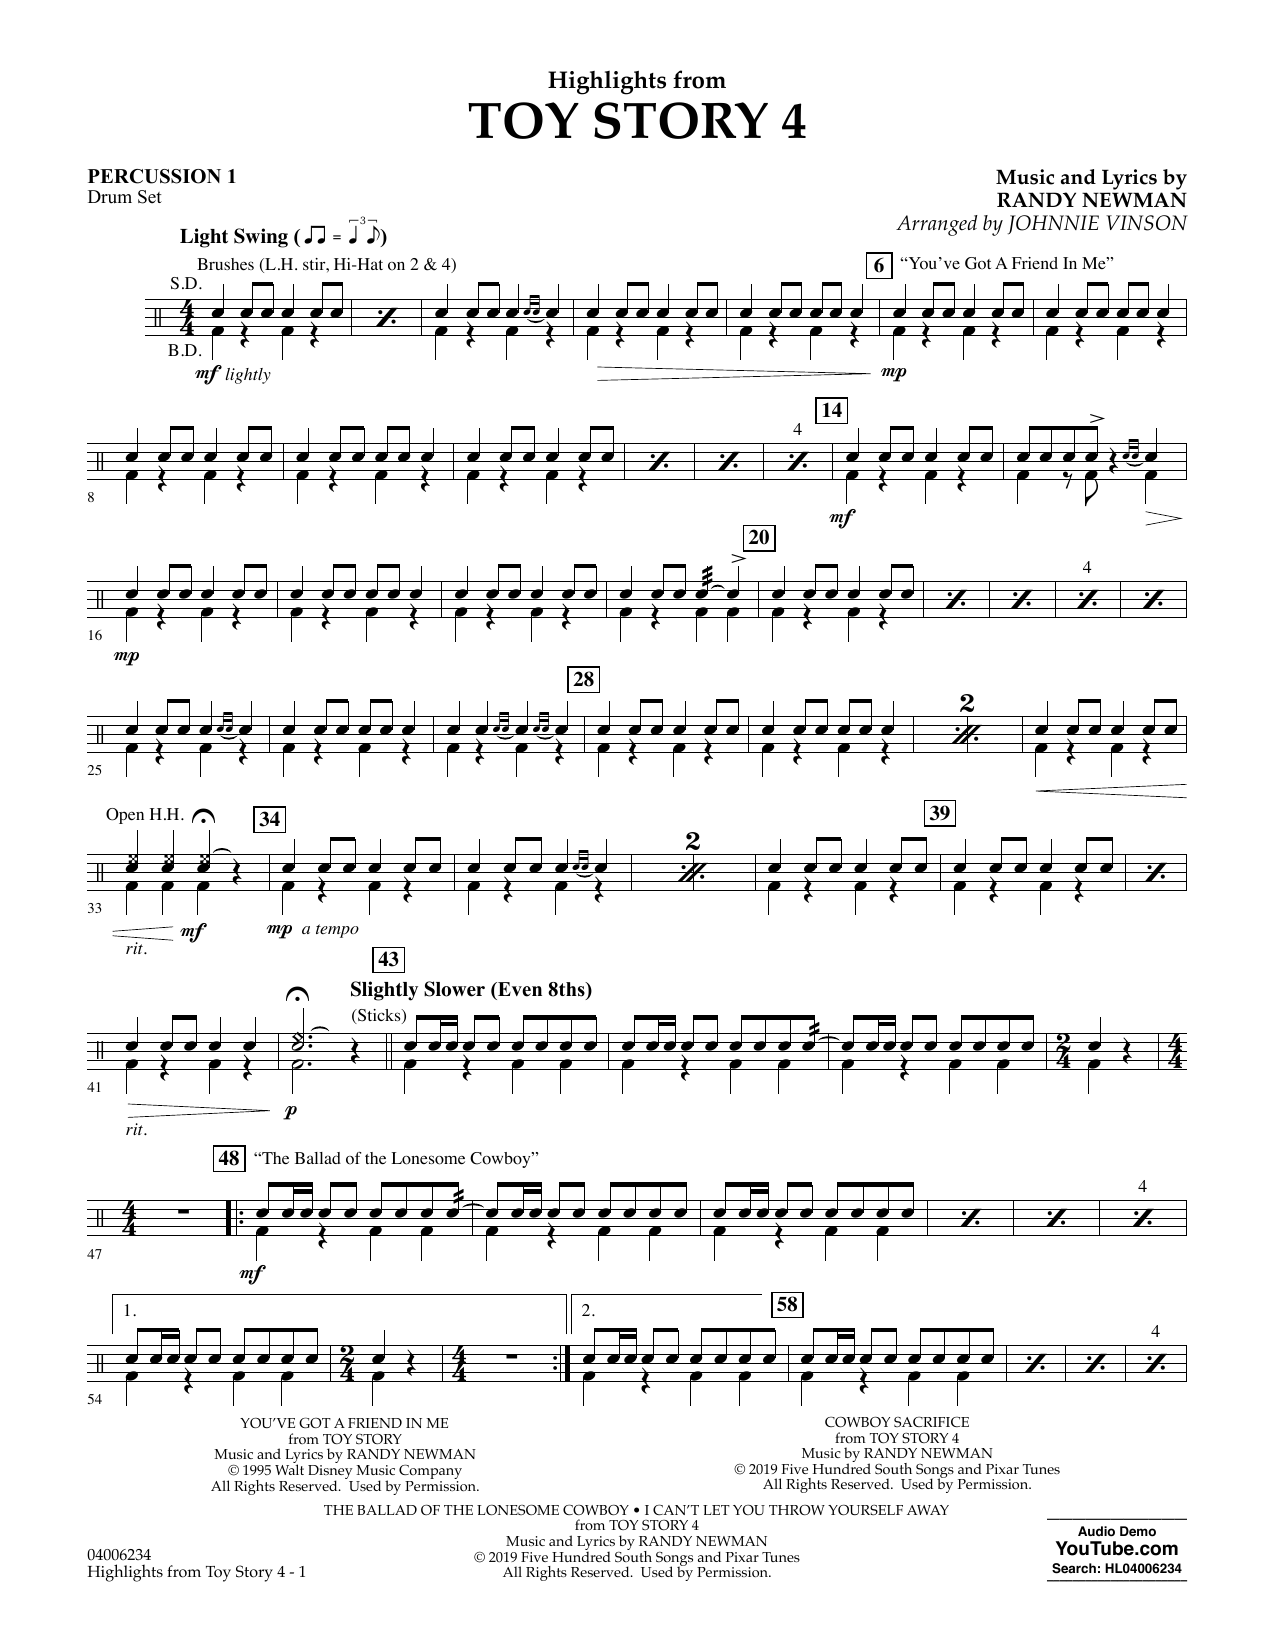 Highlights from Toy Story 4 (arr. Johnnie Vinson) - Percussion 1 (Concert Band)